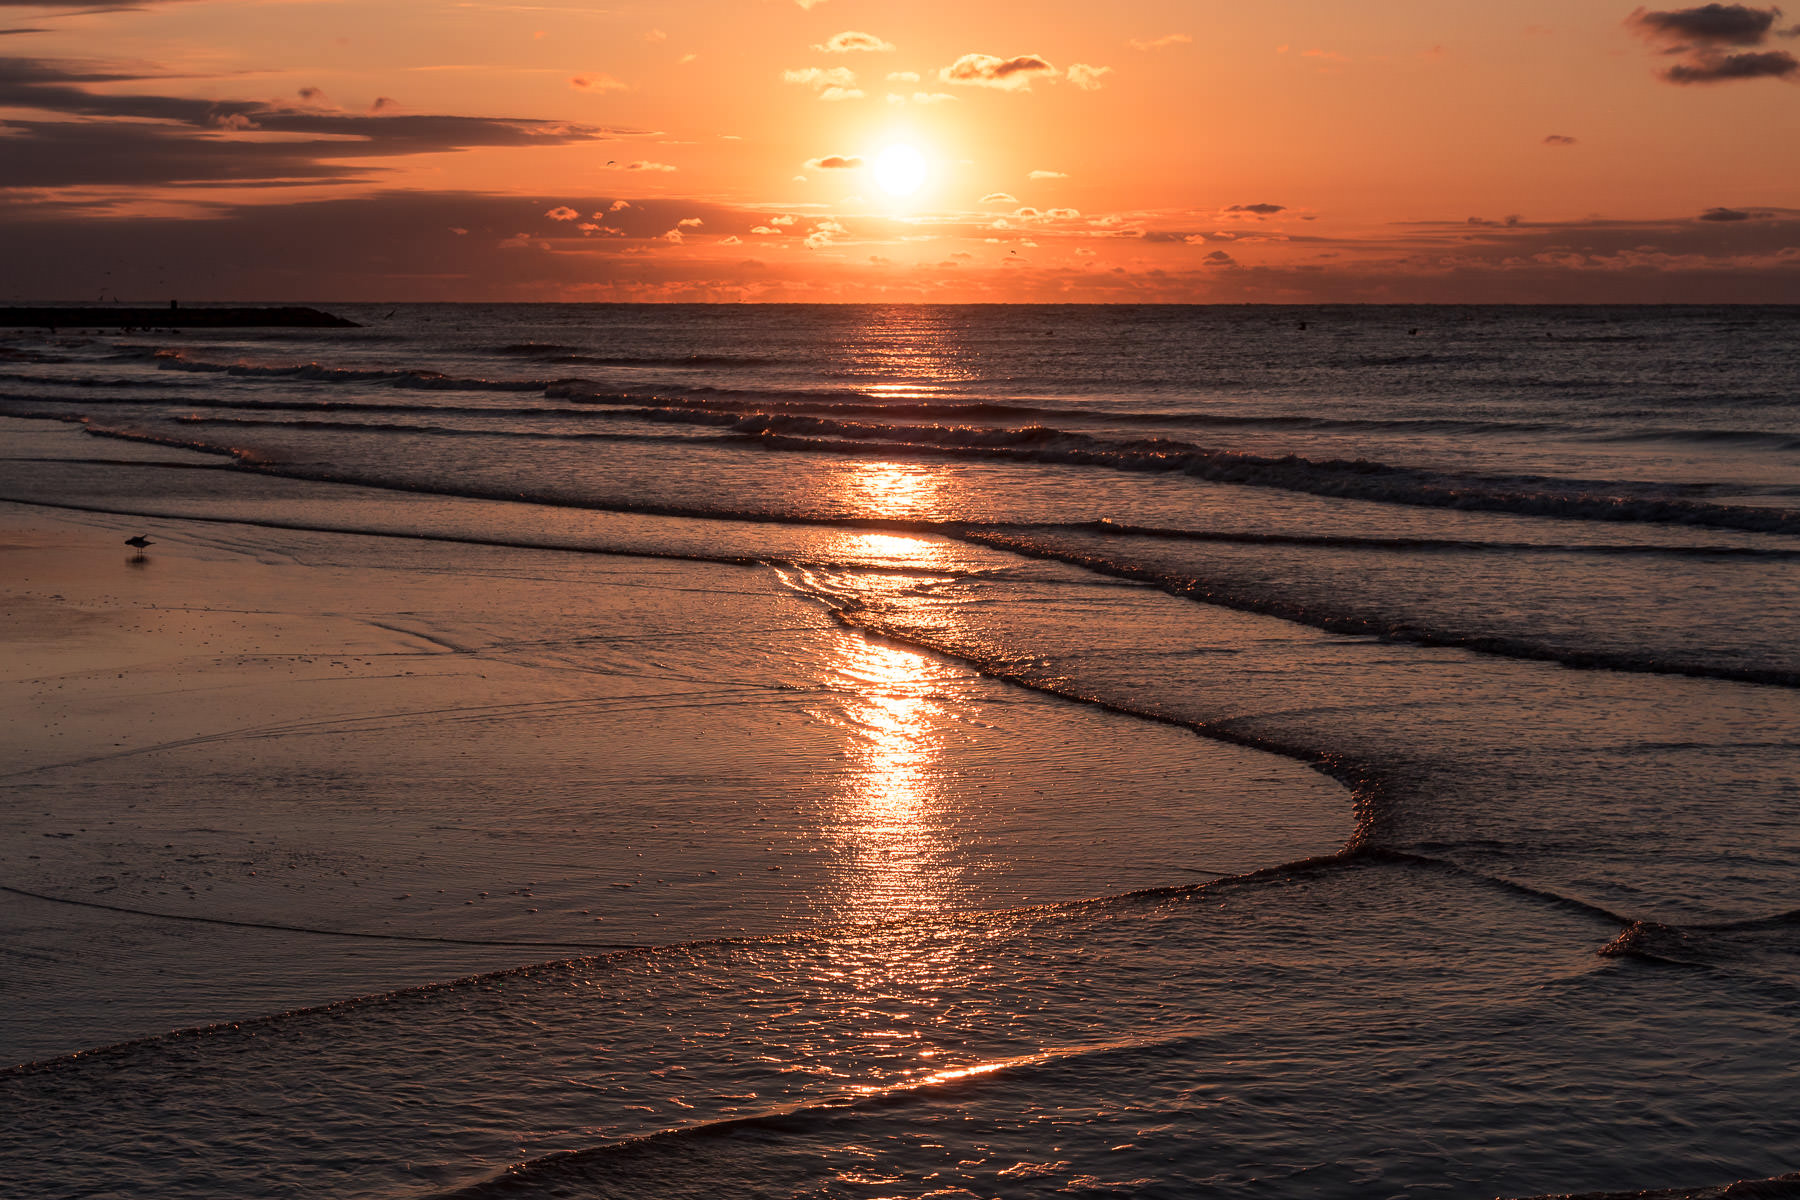 The sun rises over the beach at Galveston, Texas.